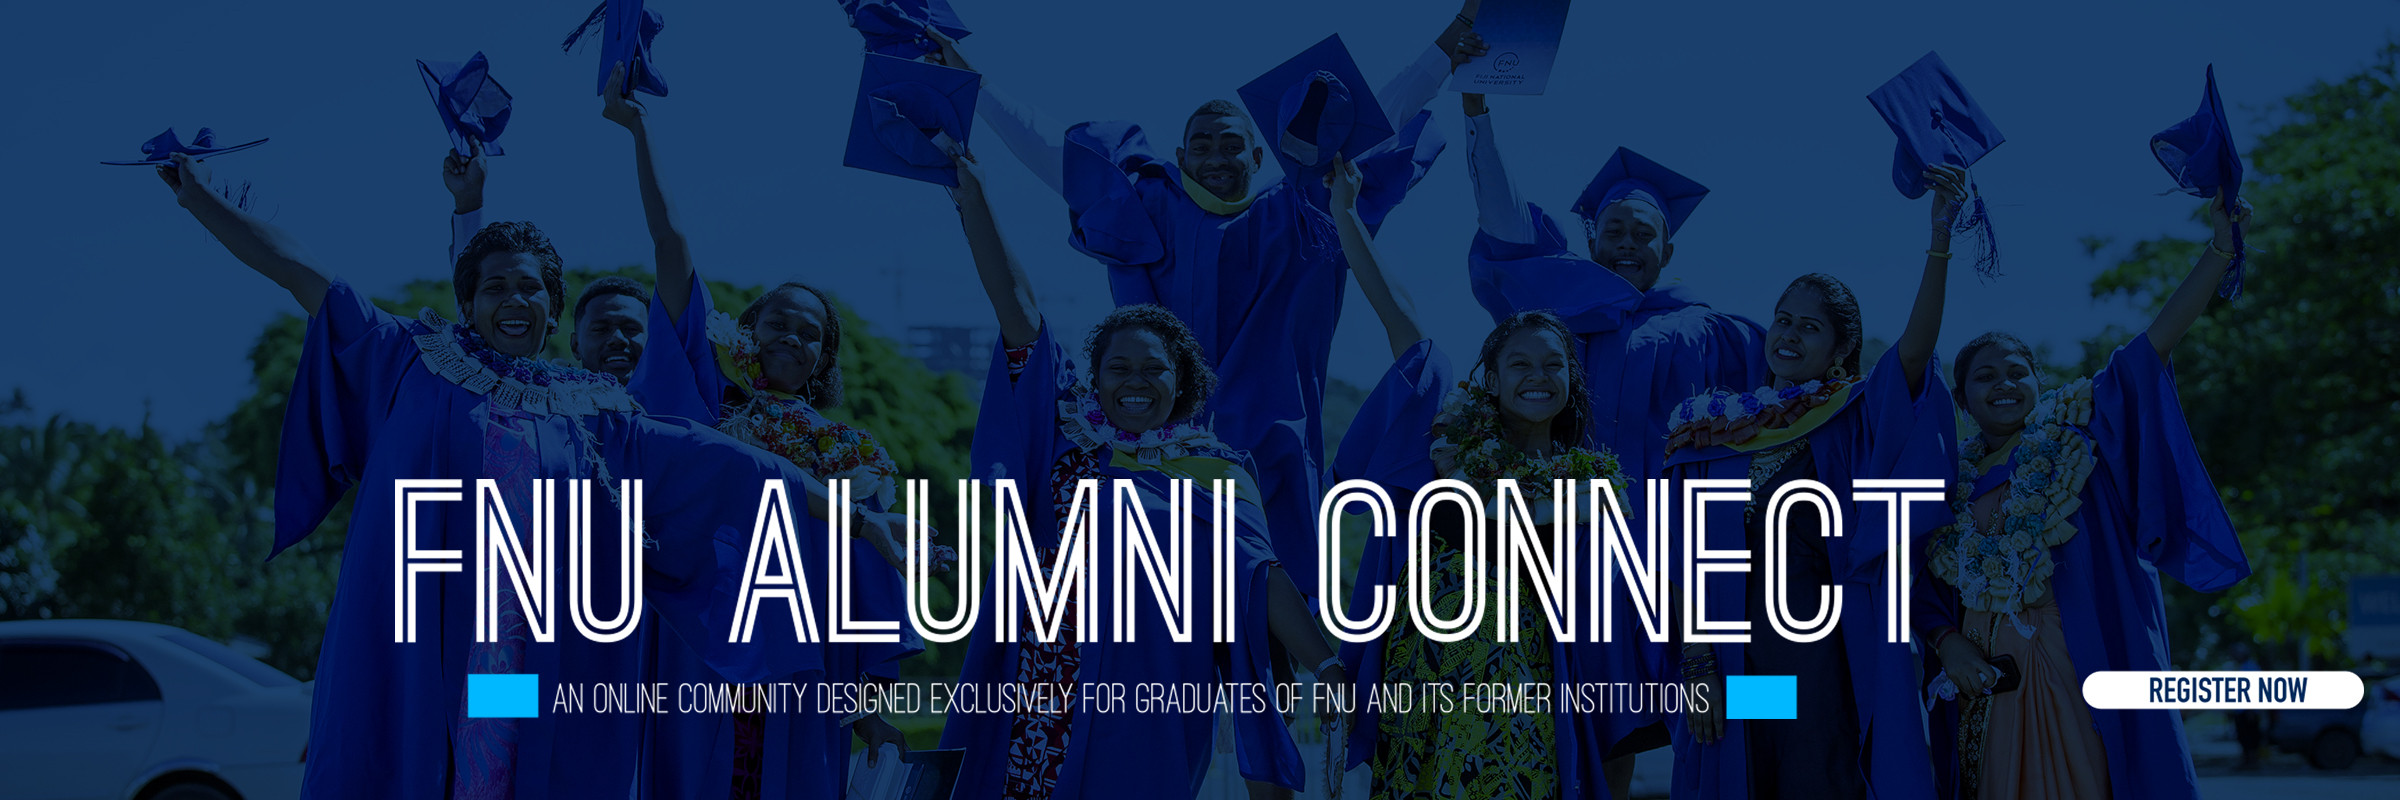 FNU Alumni Connect